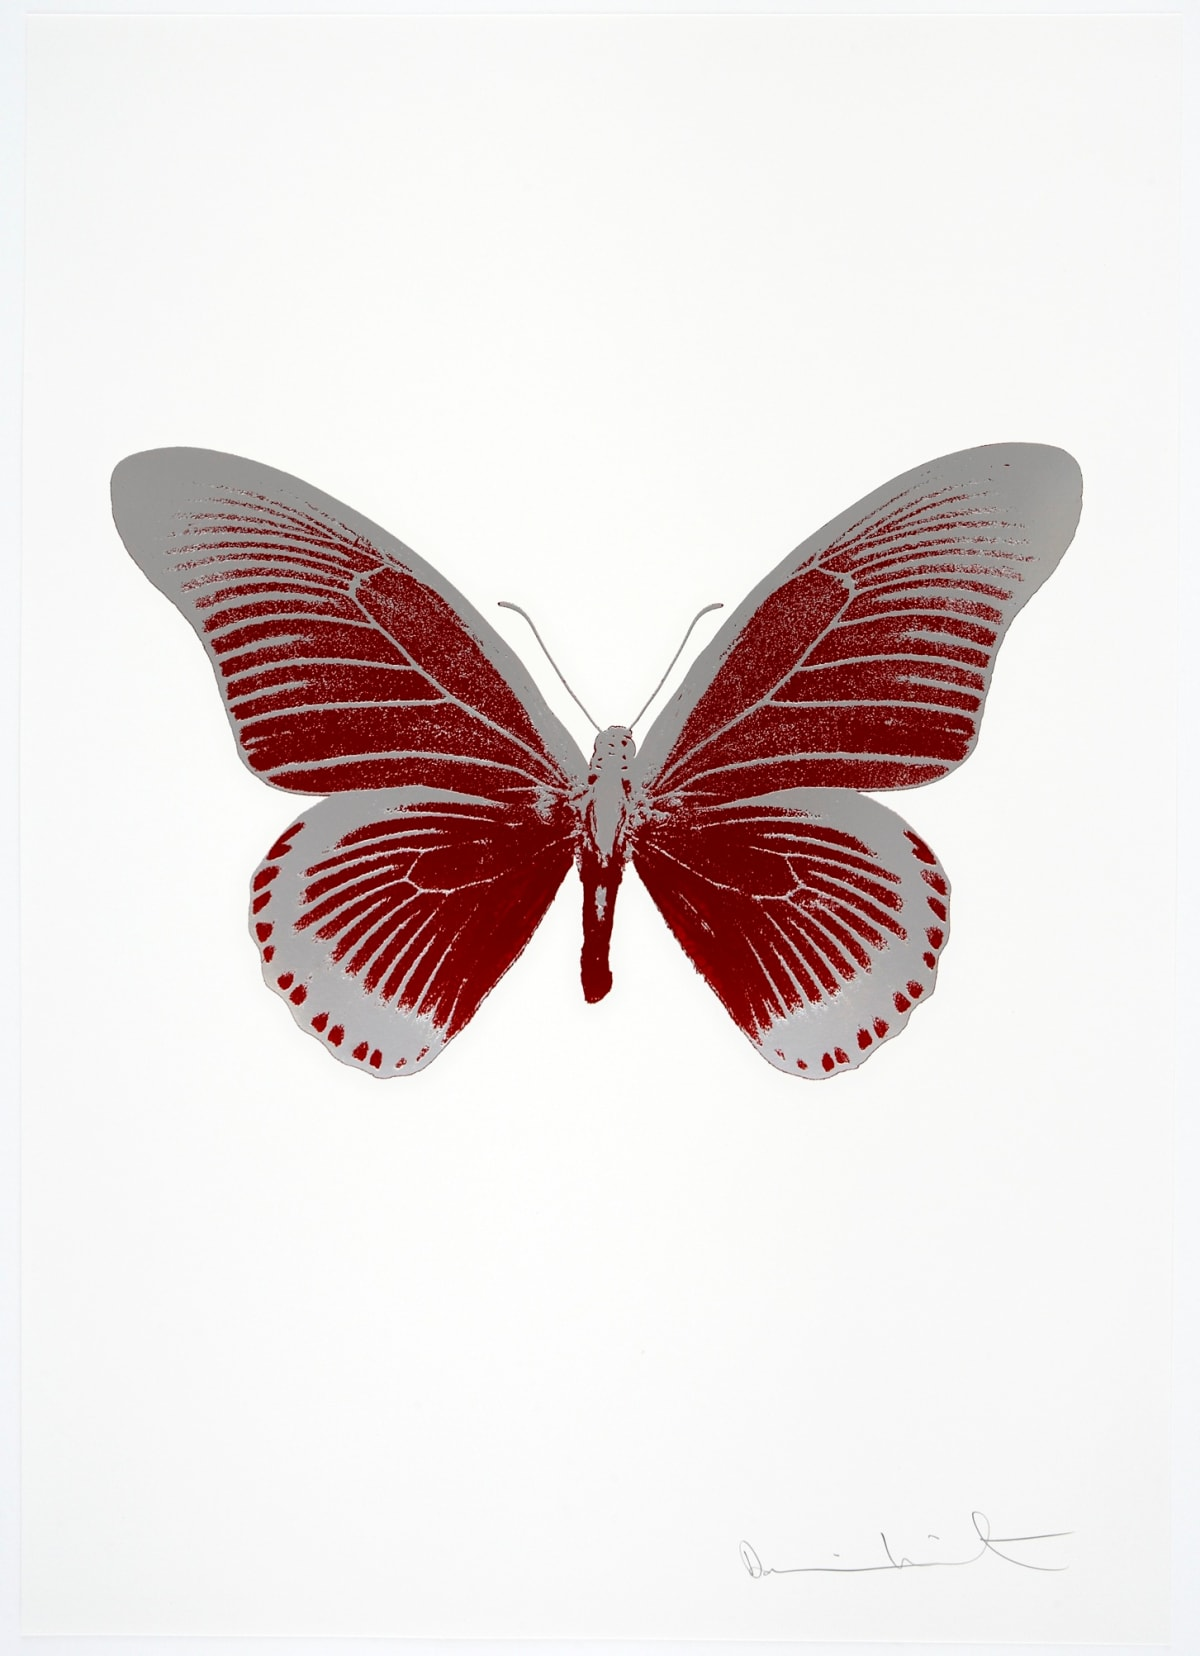 Damien Hirst The Souls IV - Chilli Red/Silver Gloss, 2010 2 colour foil block on 300gsm Arches 88 archival paper. Signed and numbered. Published by Paul Stolper and Other Criteria 72 x 51cm OC8015 / 1418-38 Edition of 15